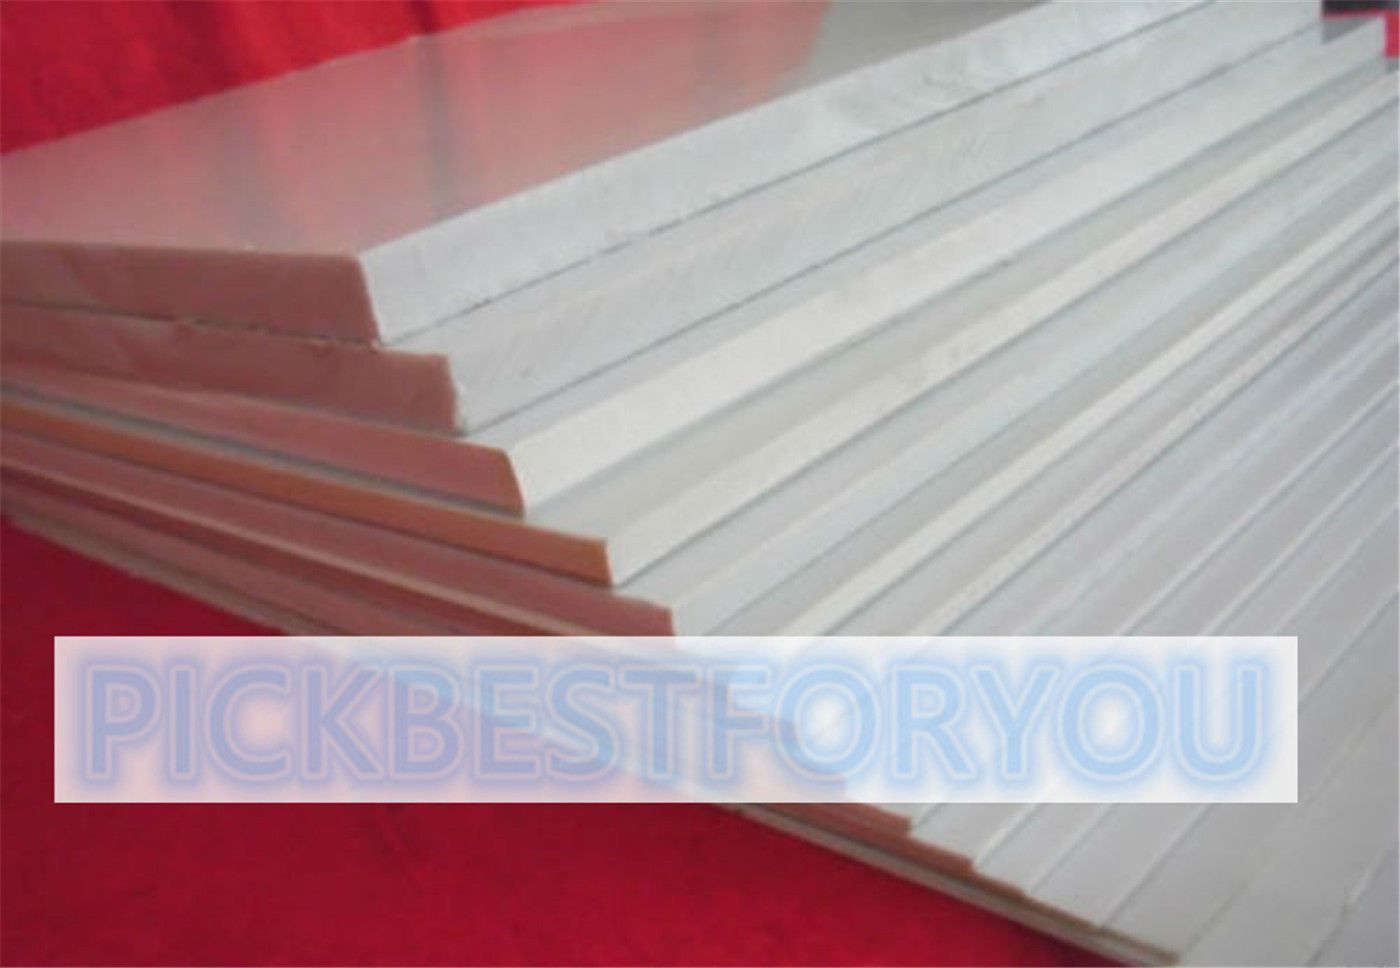 Details About 1pc Abs Styrene Plastic Sheet Plate White Smooth Wide 1 12mm Thick 0 5 12mm Ez Z Styrene Plastic Plastic Sheets Plates